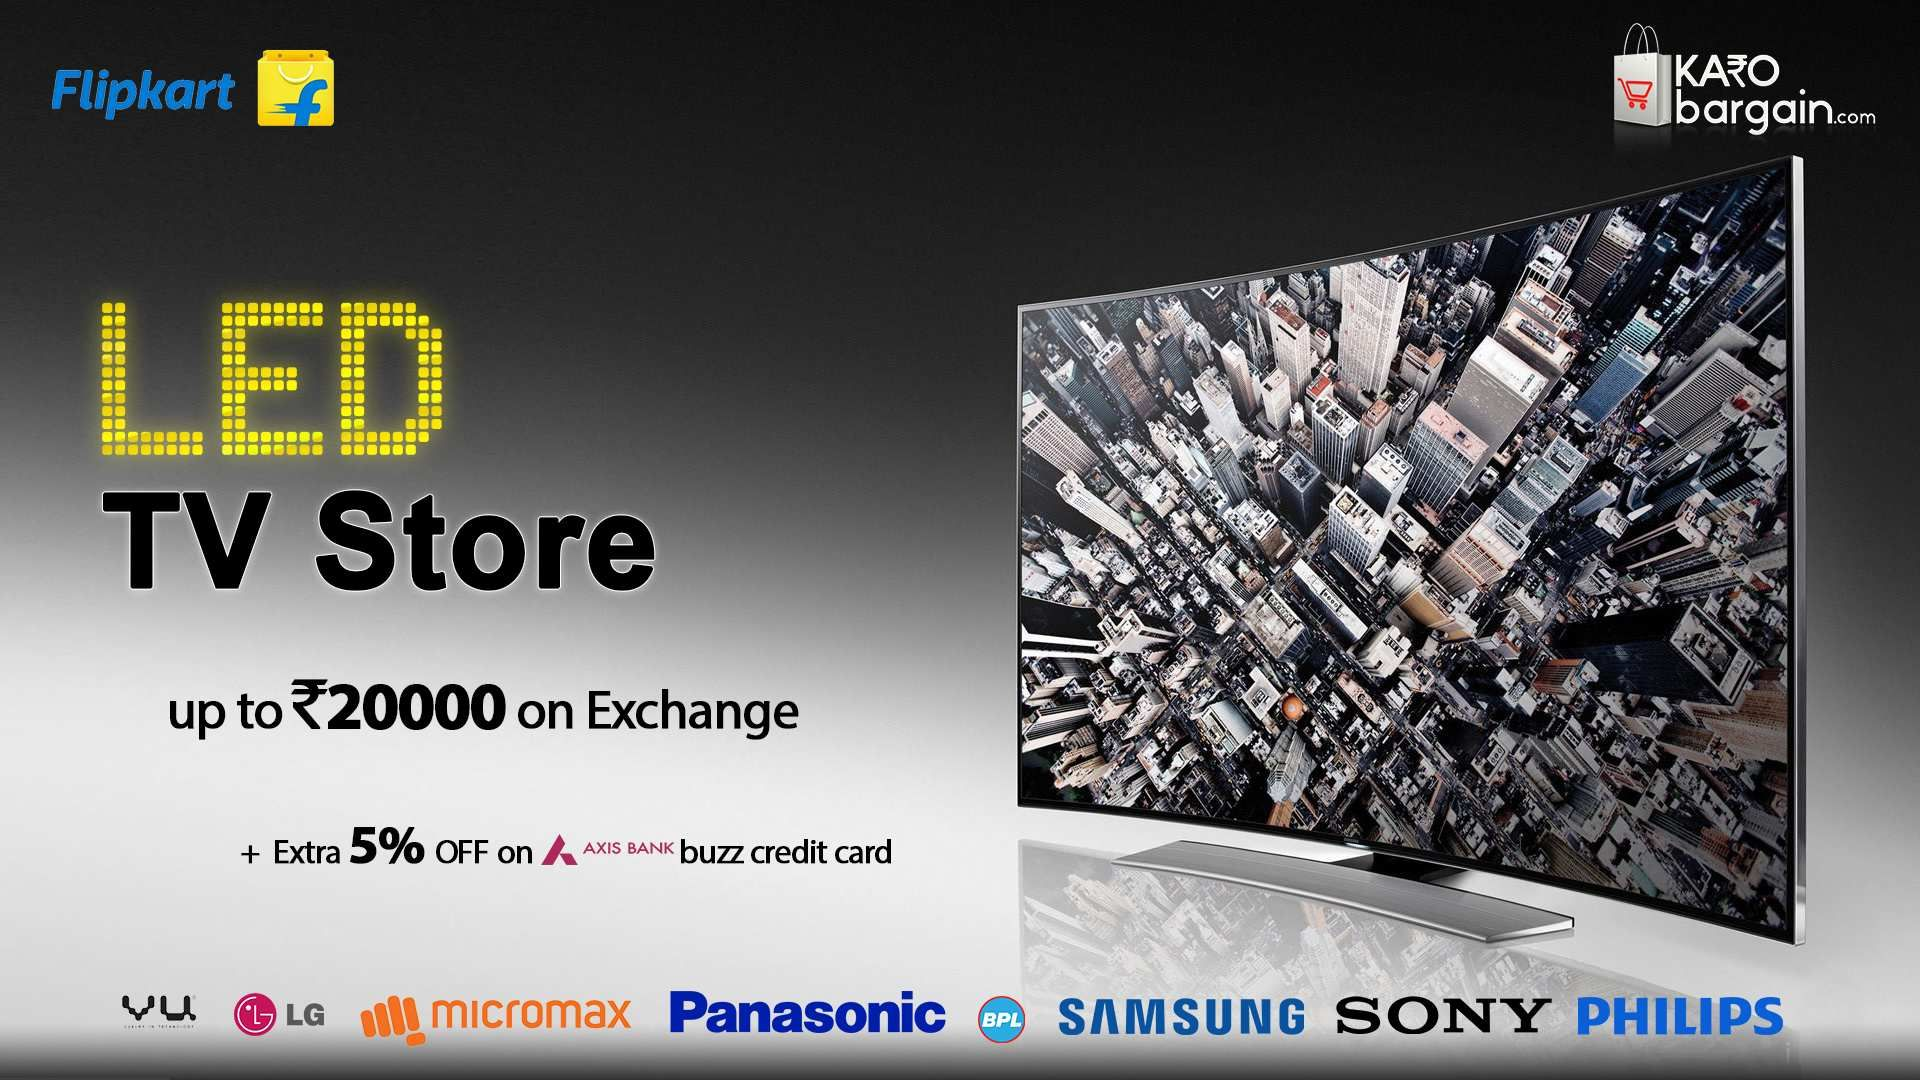 Flipkartboards Led Television Store With Amazing Exchange Offers